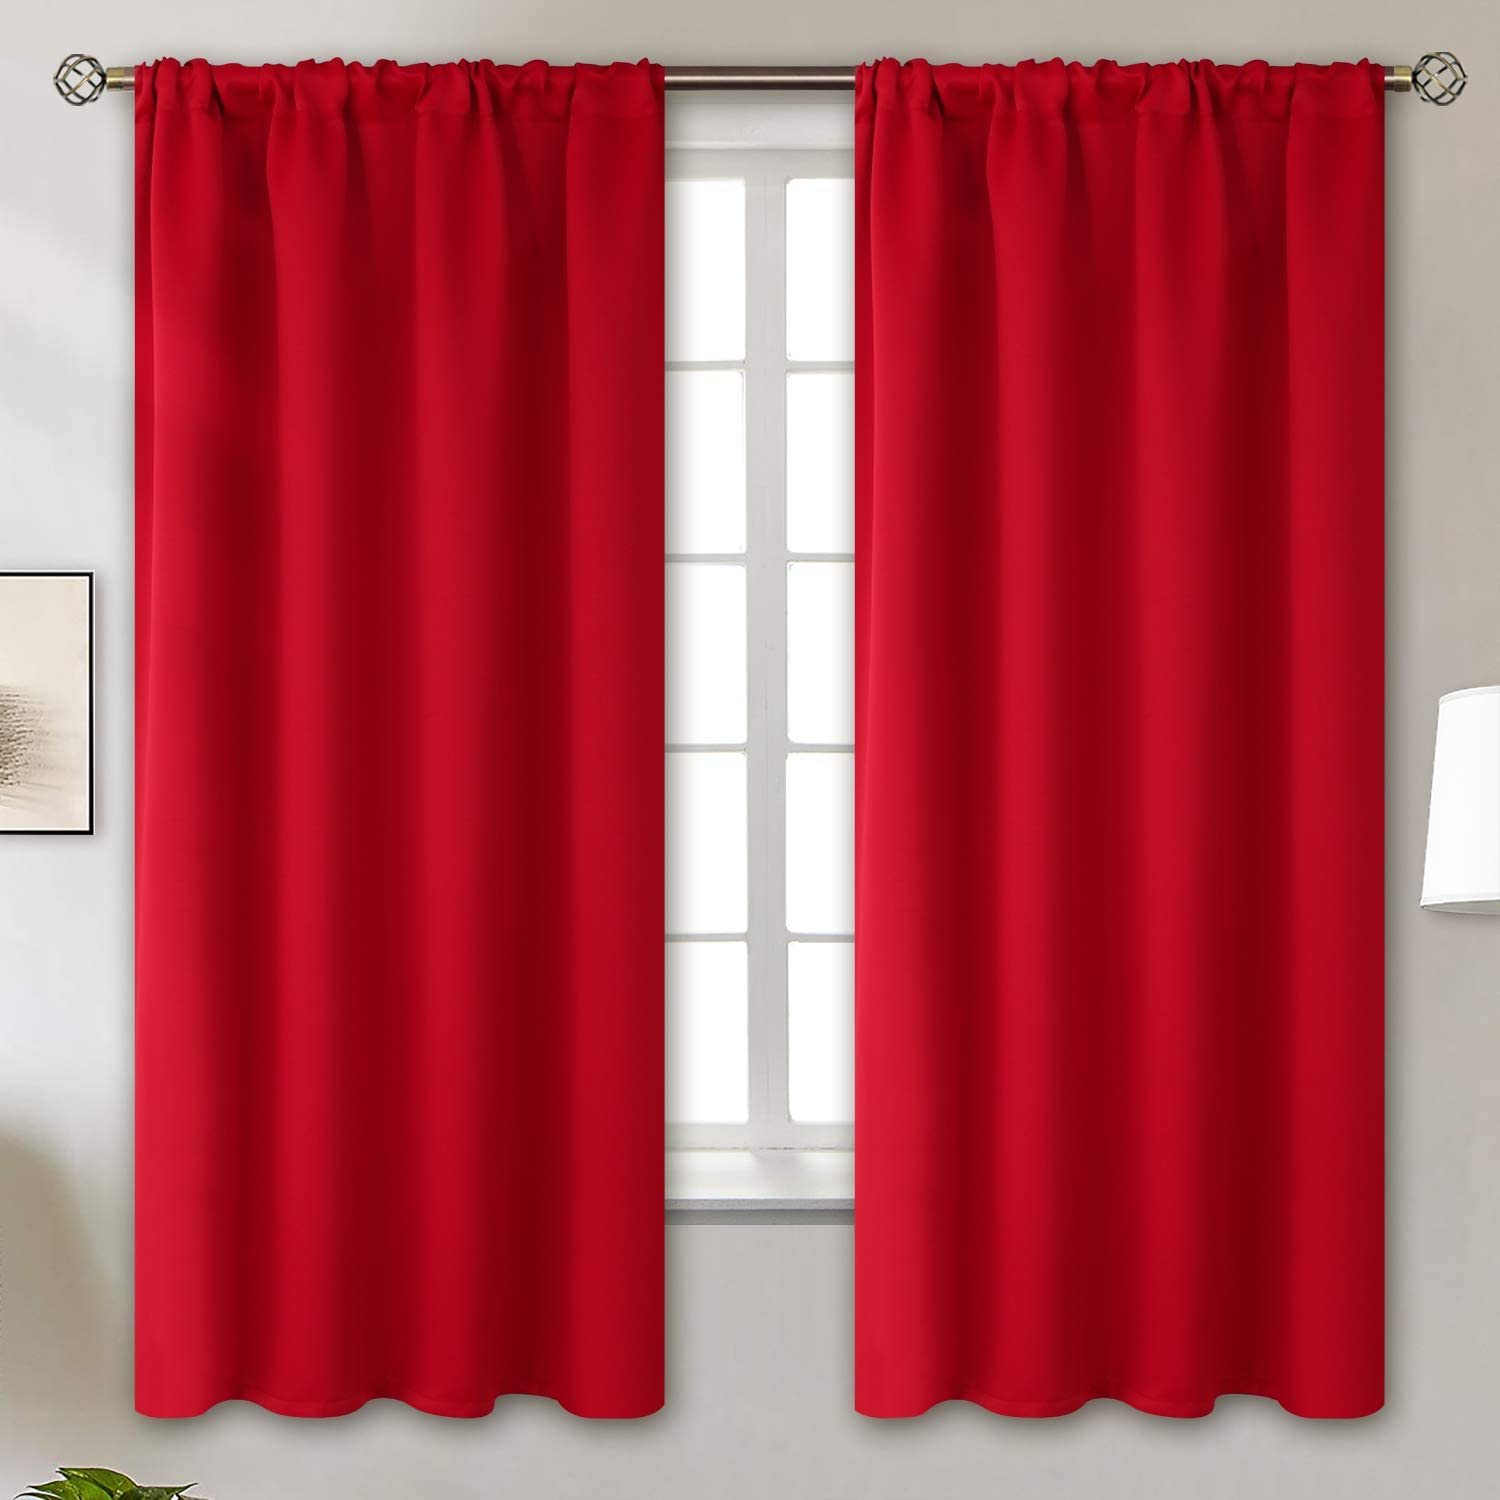 BGment Rod Pocket Blackout Curtains for Bedroom Thermal Insulated Room Darkening Curtain for Living Room Emerald 2 Panels 42 x 45 Inch